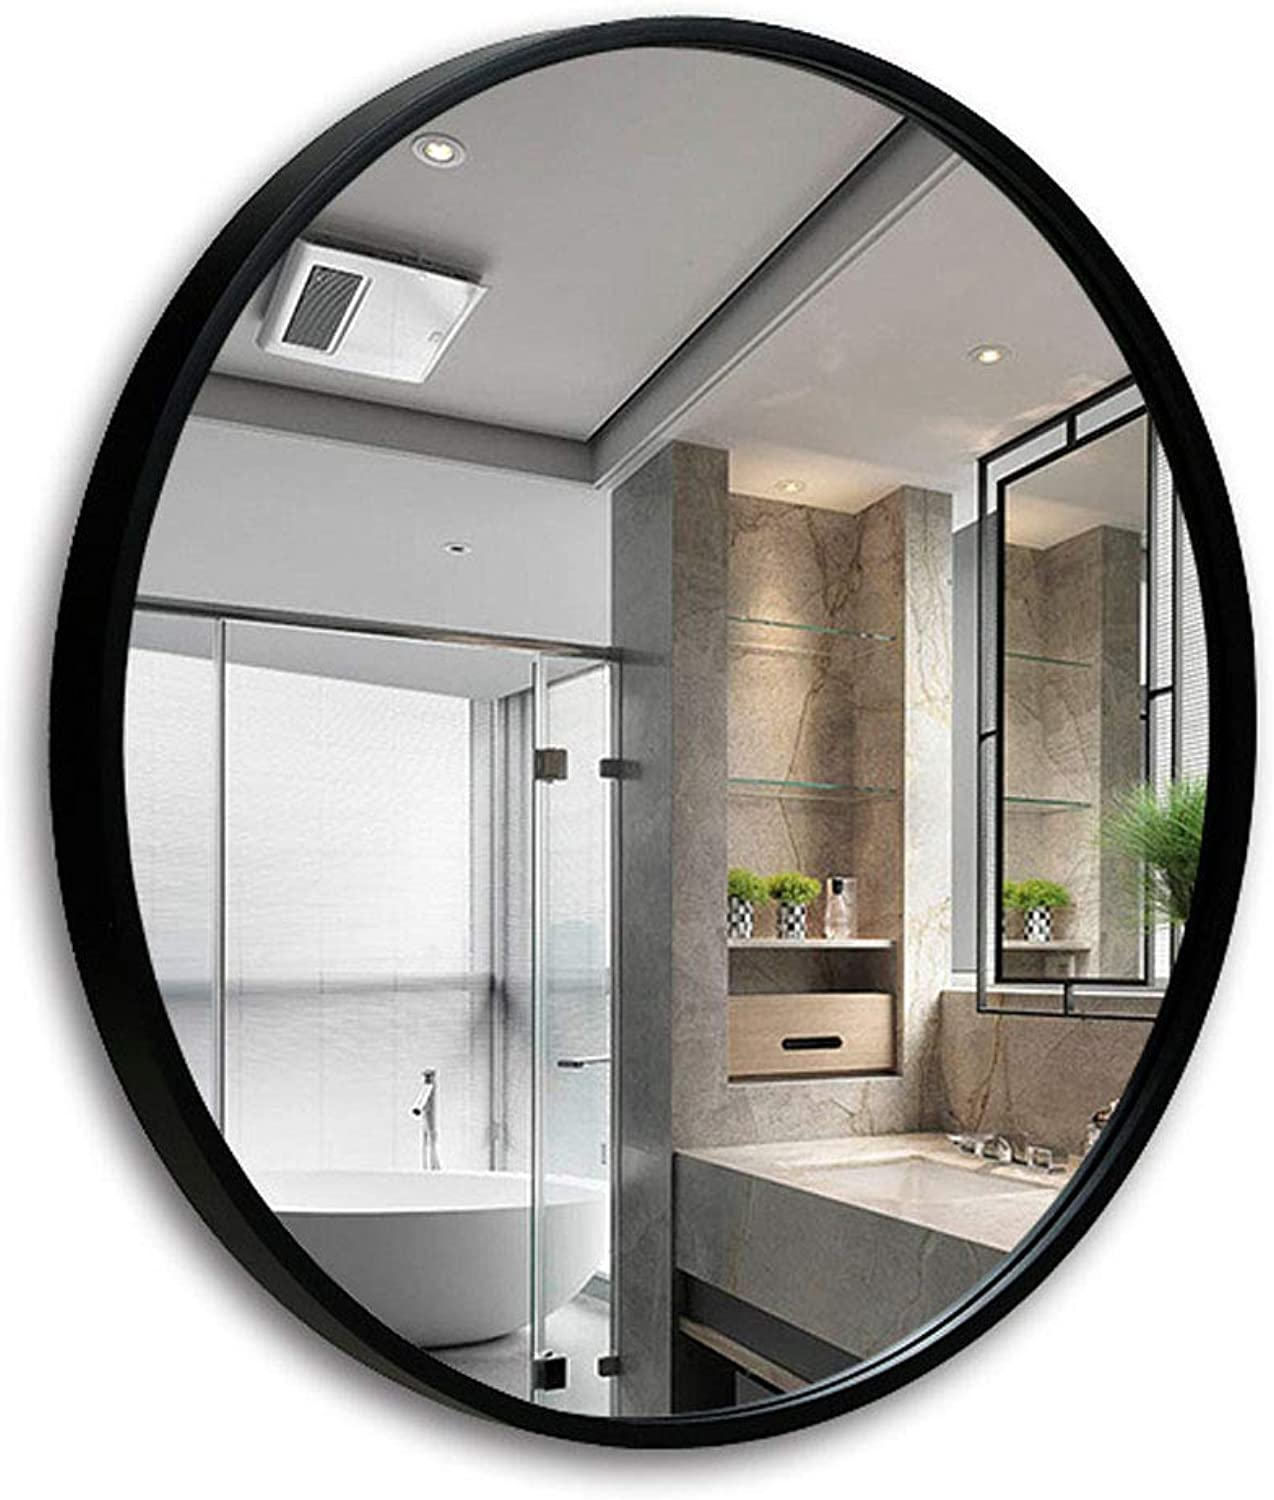 Round Bathroom Mirror Circle Wall-Mounted Wooden Frame Mirror Makeup Shaving Wall Mirror 50-70cm Available Black